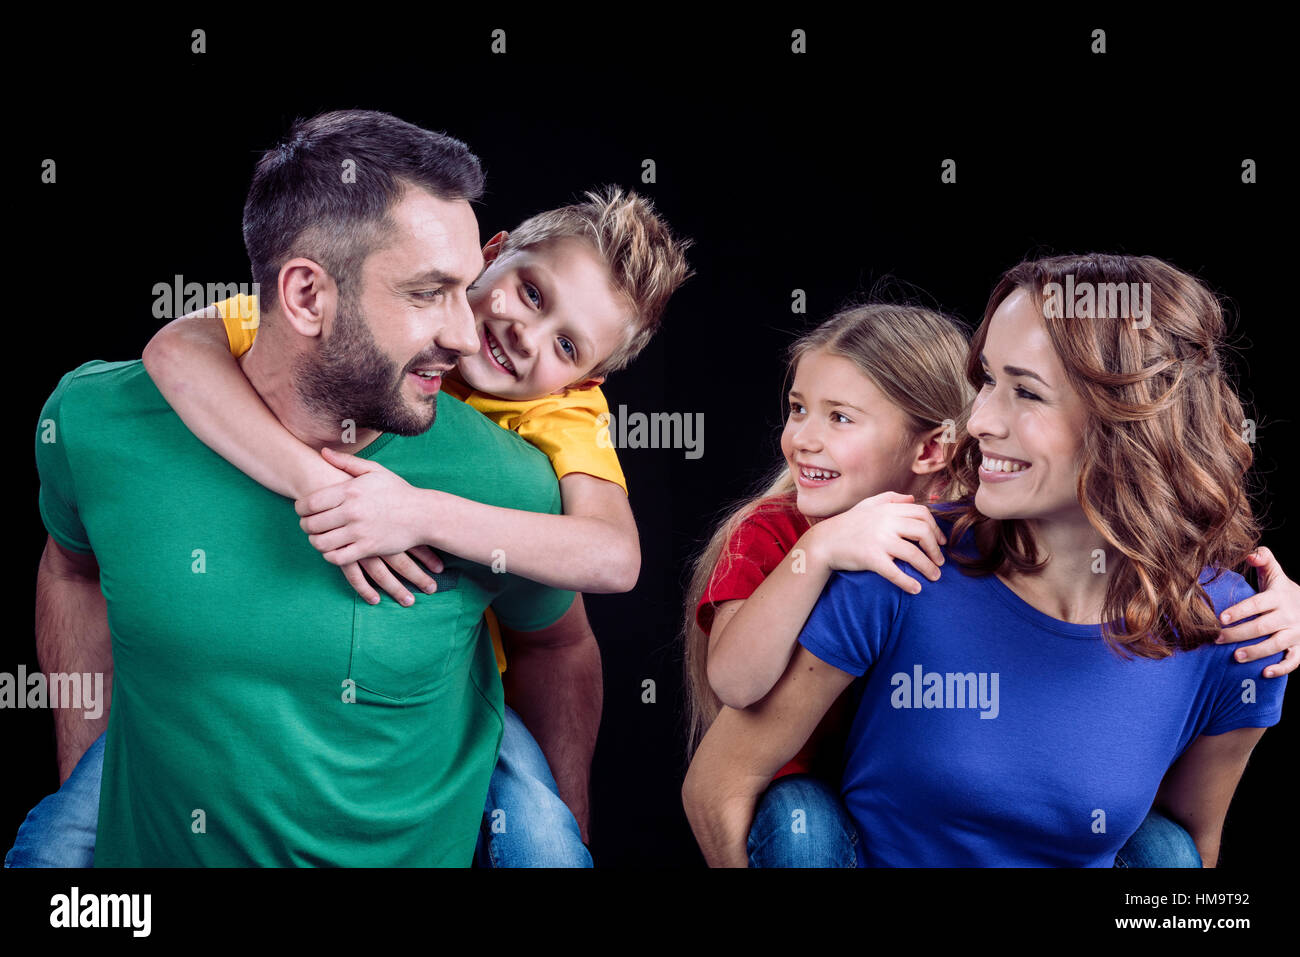 Happy Family im bunten t-shirts Stockbild